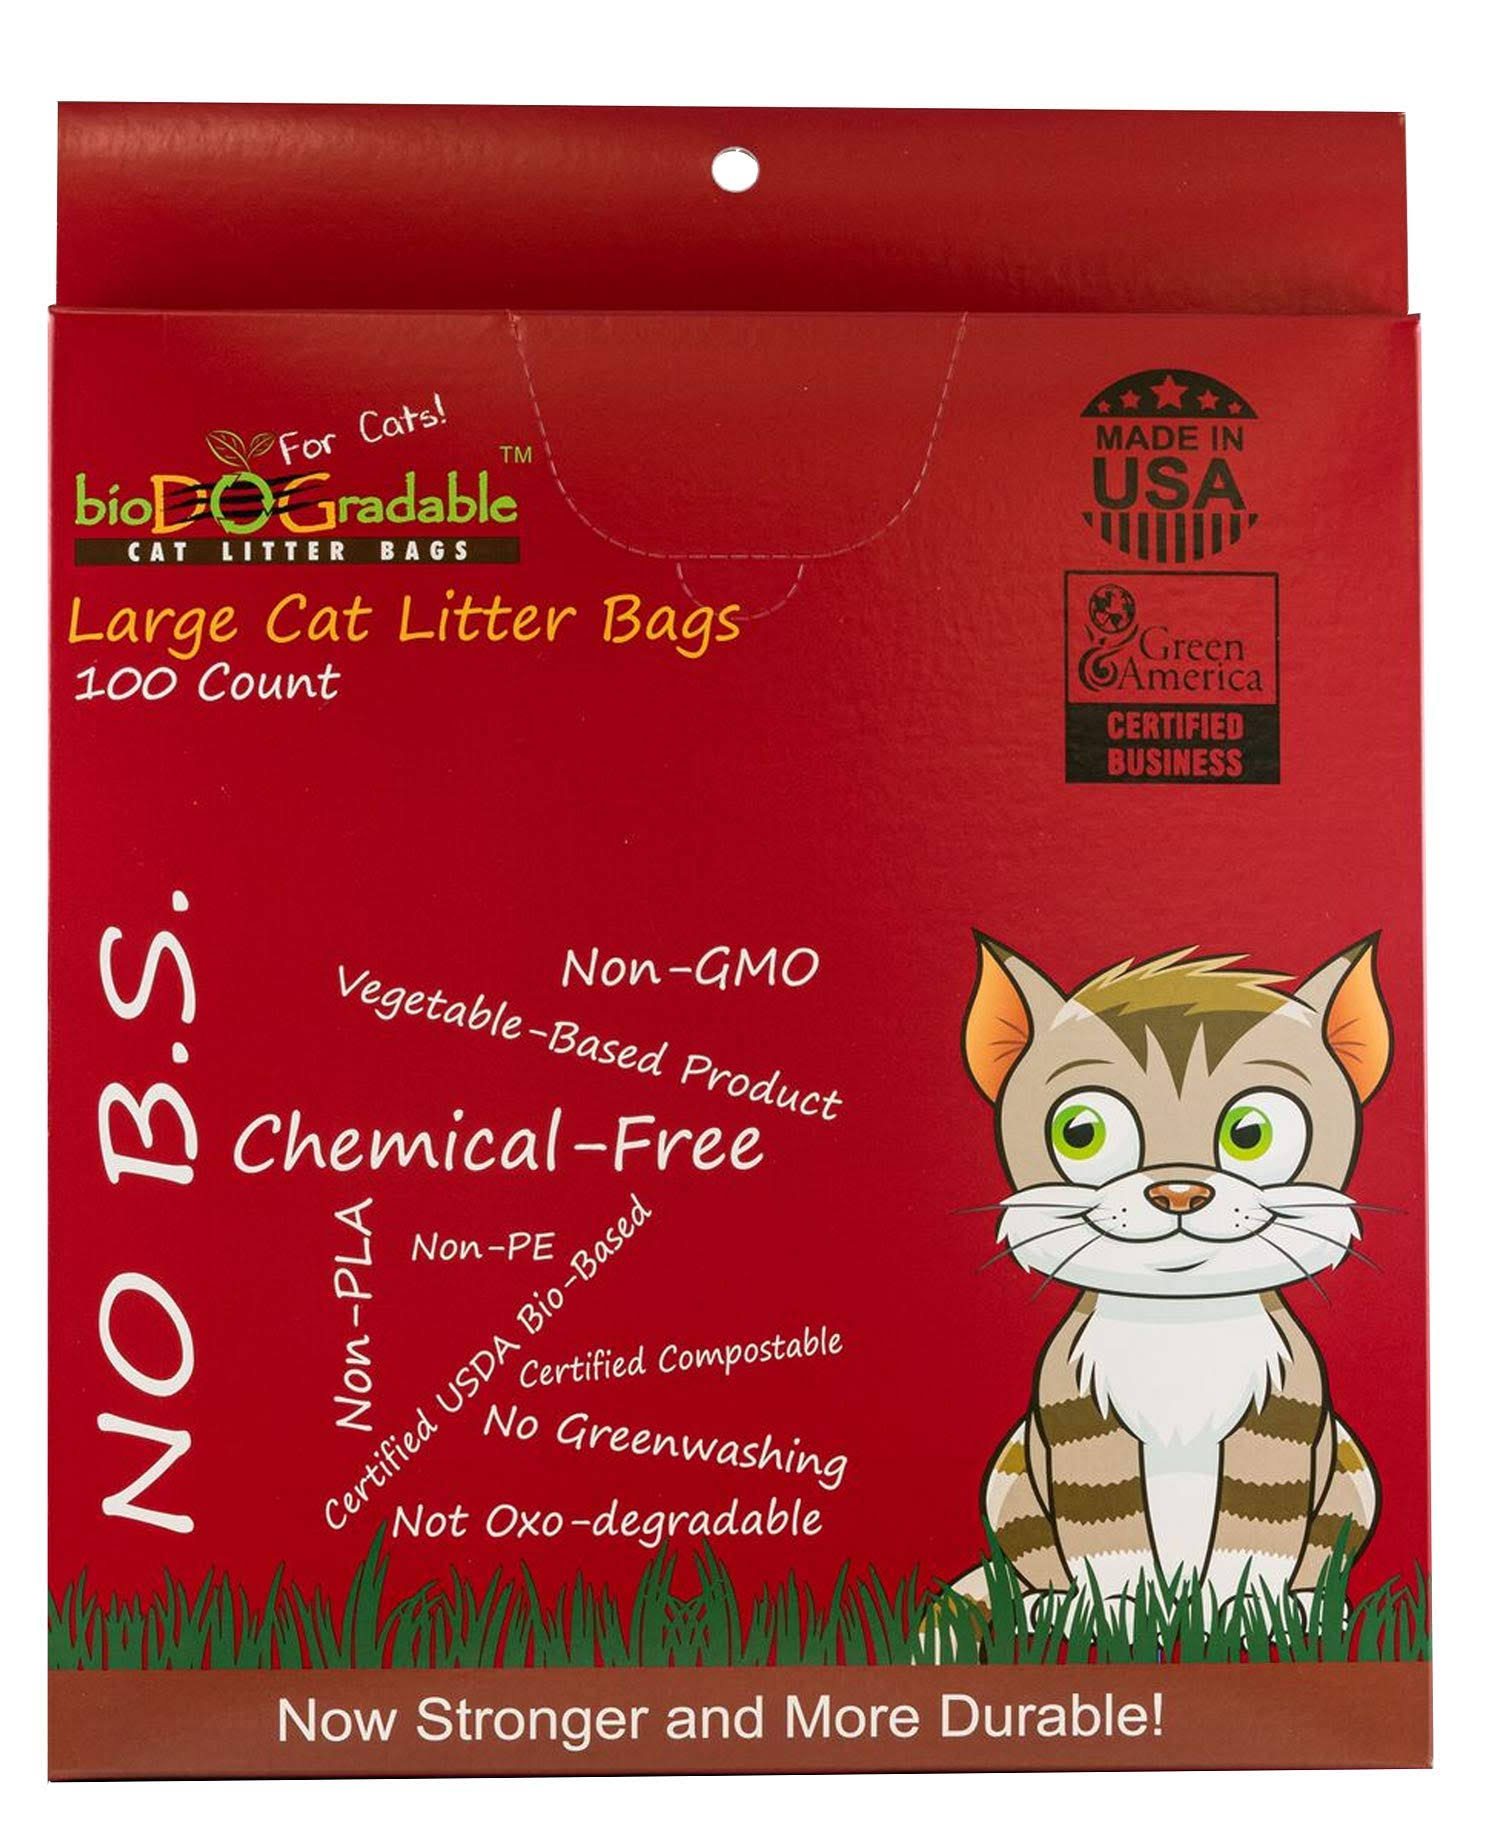 bioDOGradable Compostable Cat Litter Large Waste Bags, 100 Count